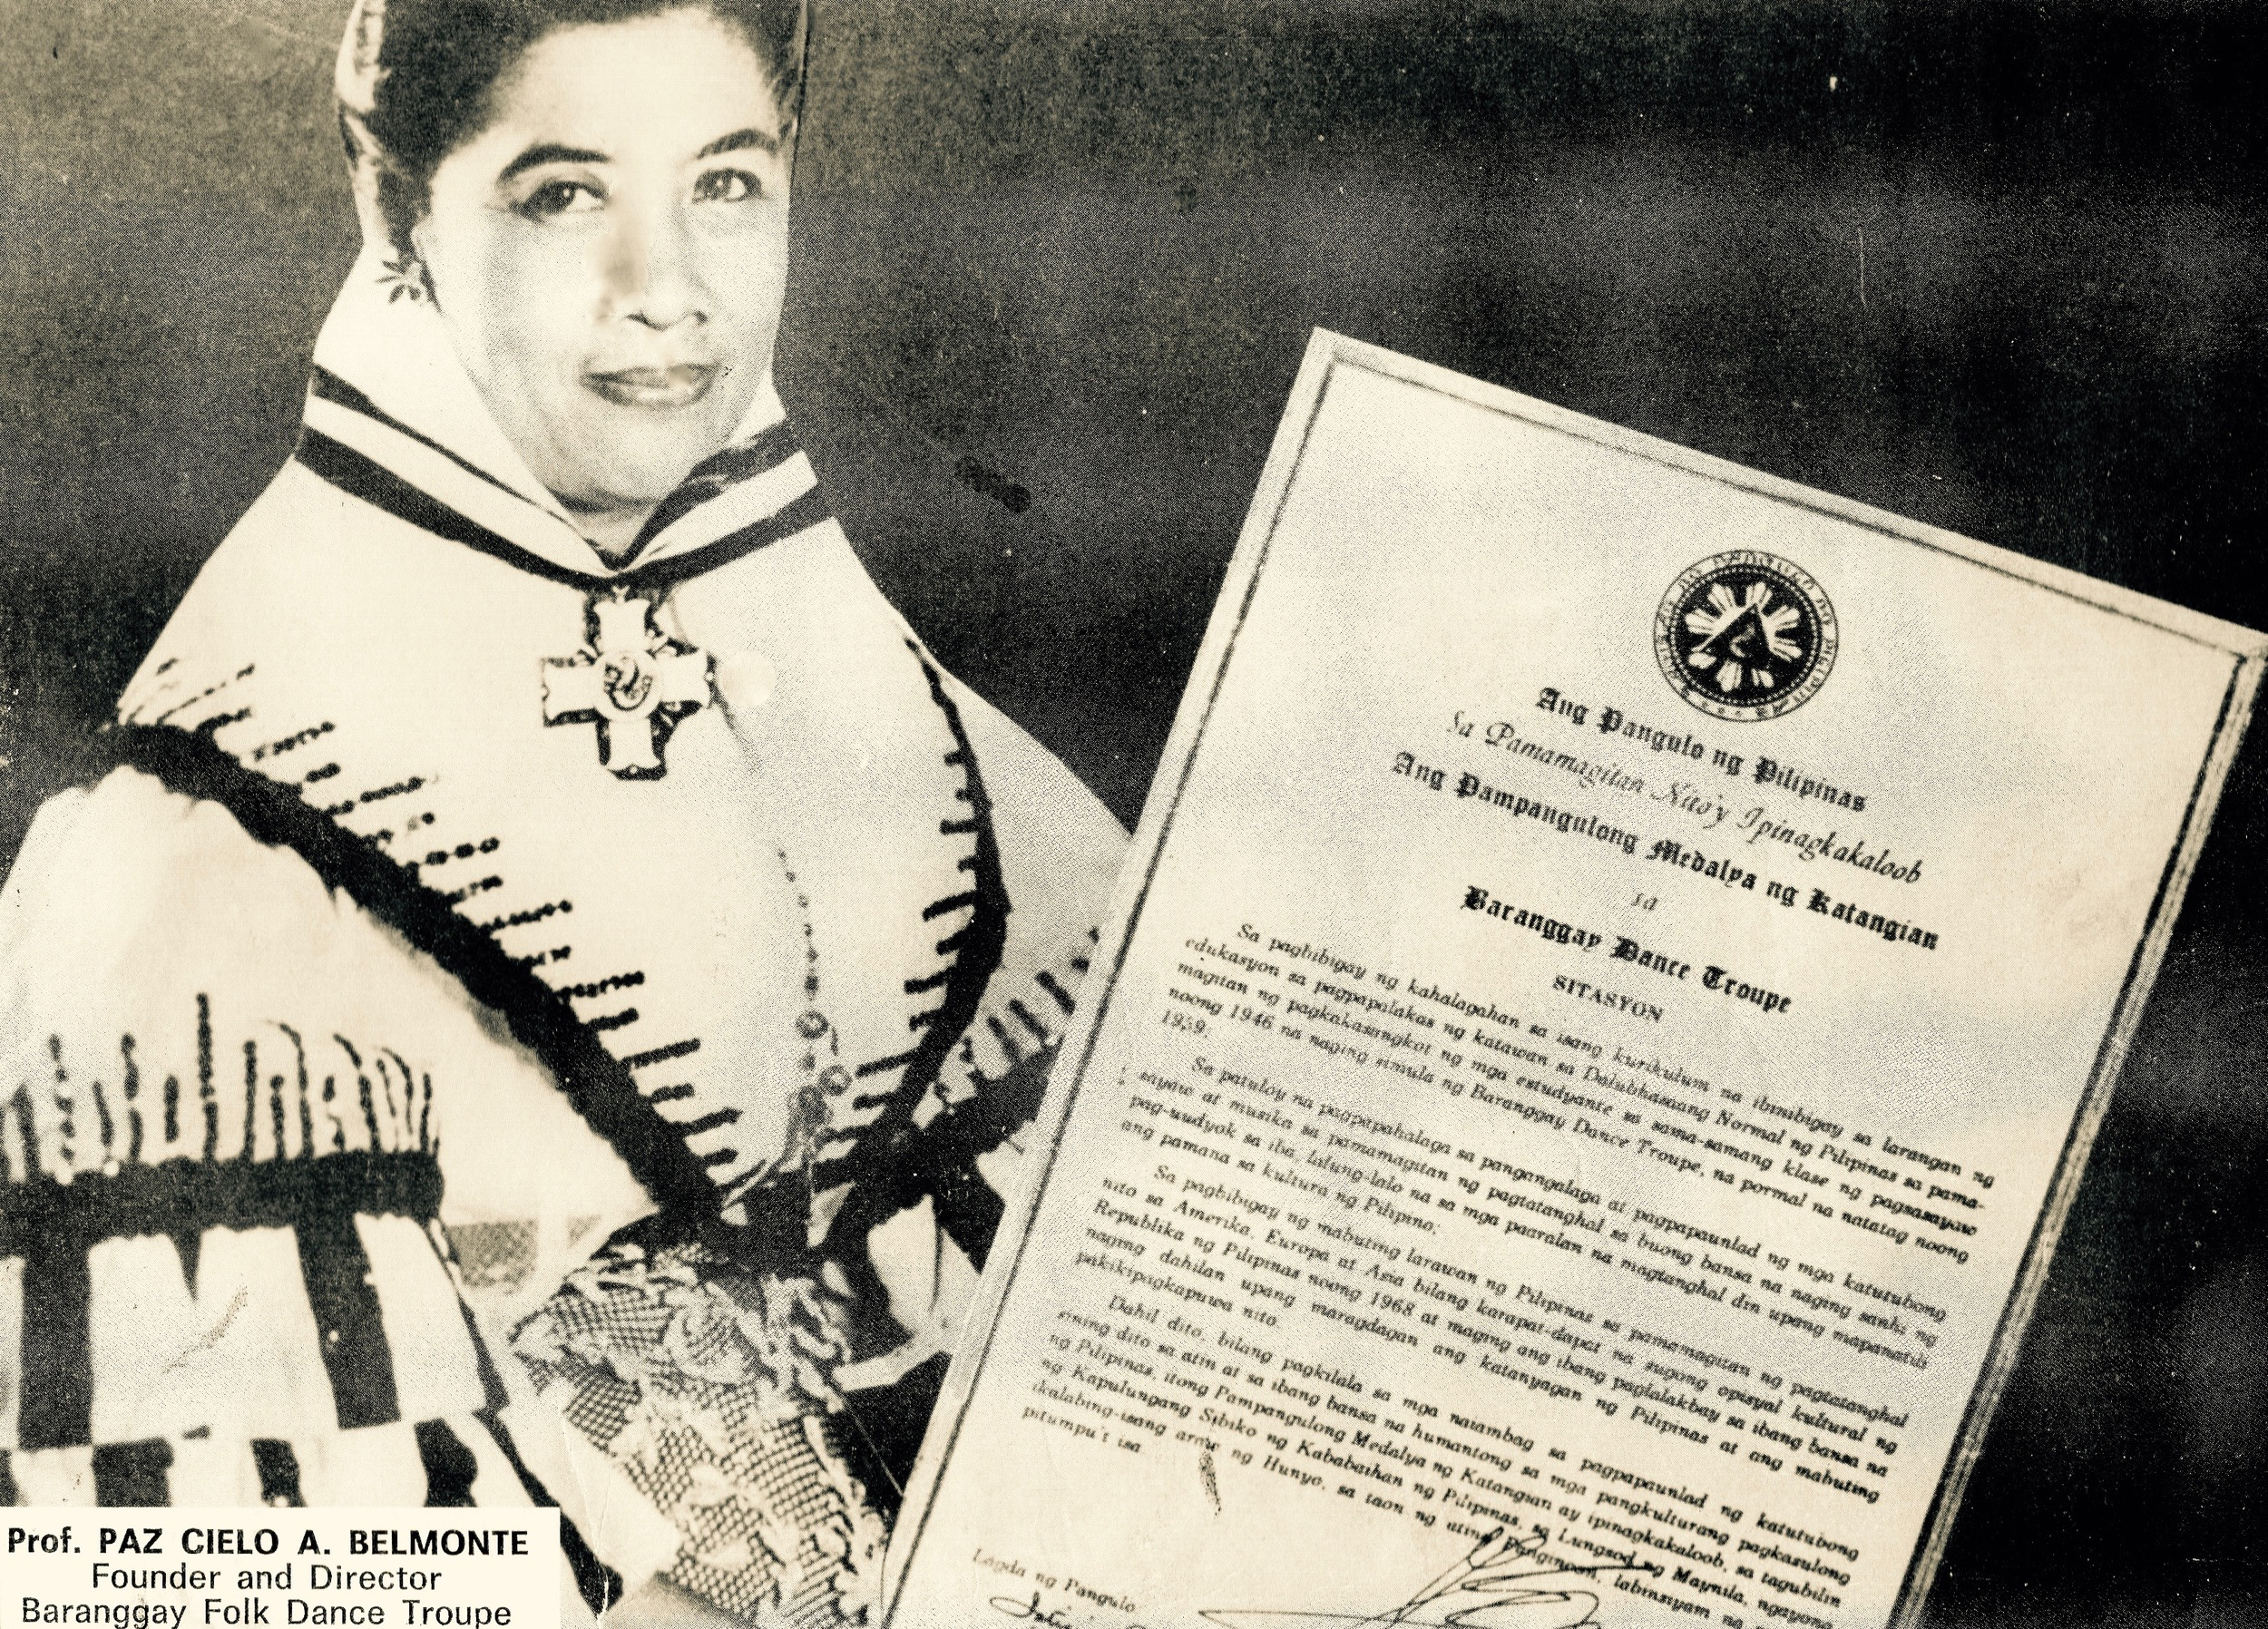 Dr Paz Cielo A Belmonte classic portrait after receiving the highest Presidential Awards - a traditional awards by the President of the Philippines to outstanding citizens and organizations known as the Presidential Medal of Merit, for outstanding contribution to   ADVANCEMENT OF PHILIPPINE CULTURE  .